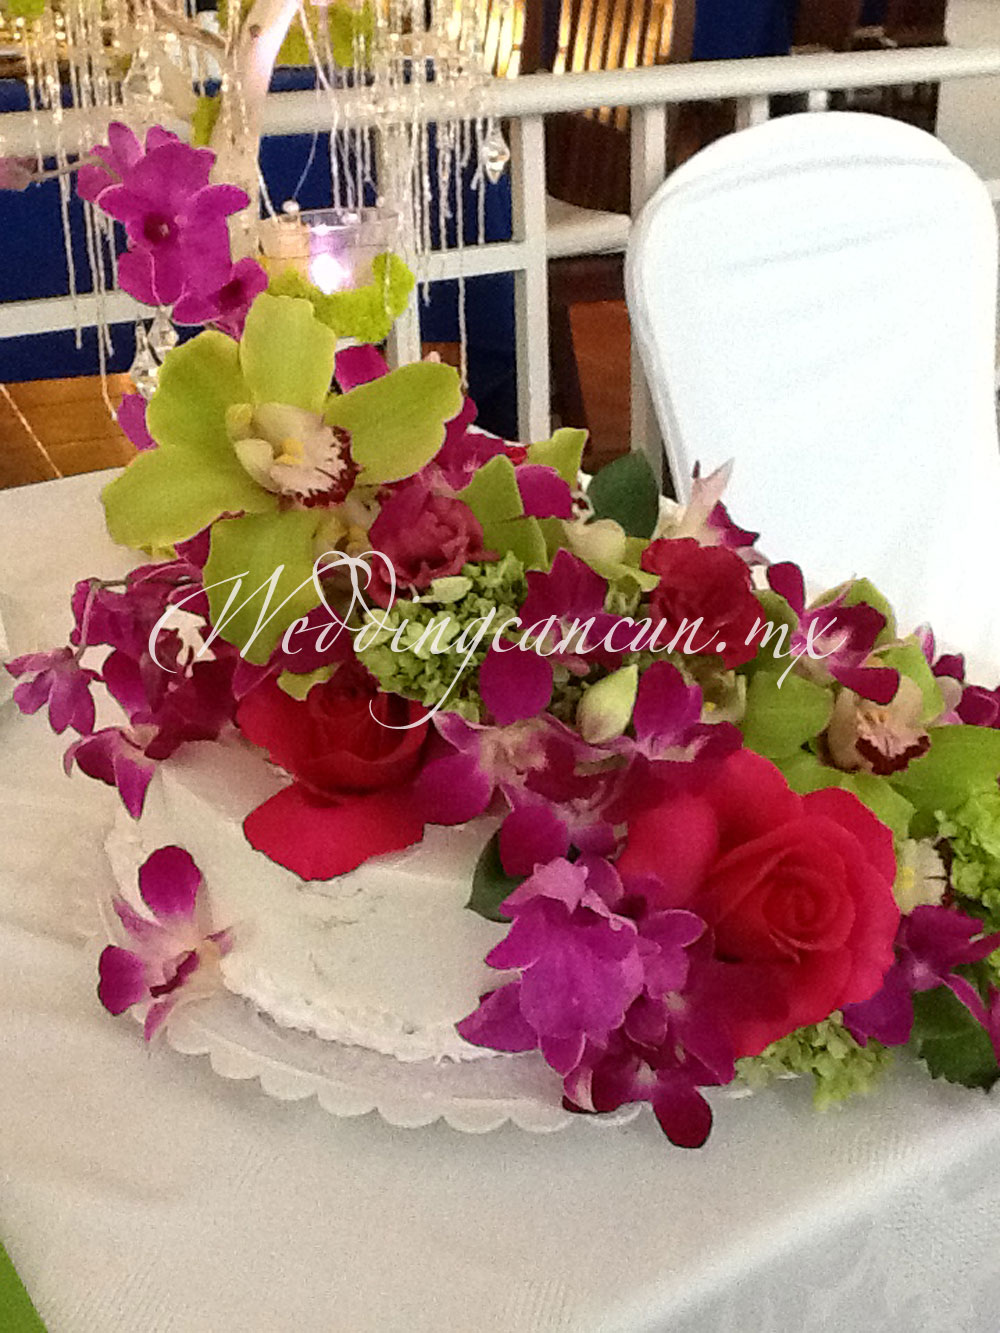 Beautiful combination of green, fucsia and purple flowers. A deluxe cake!